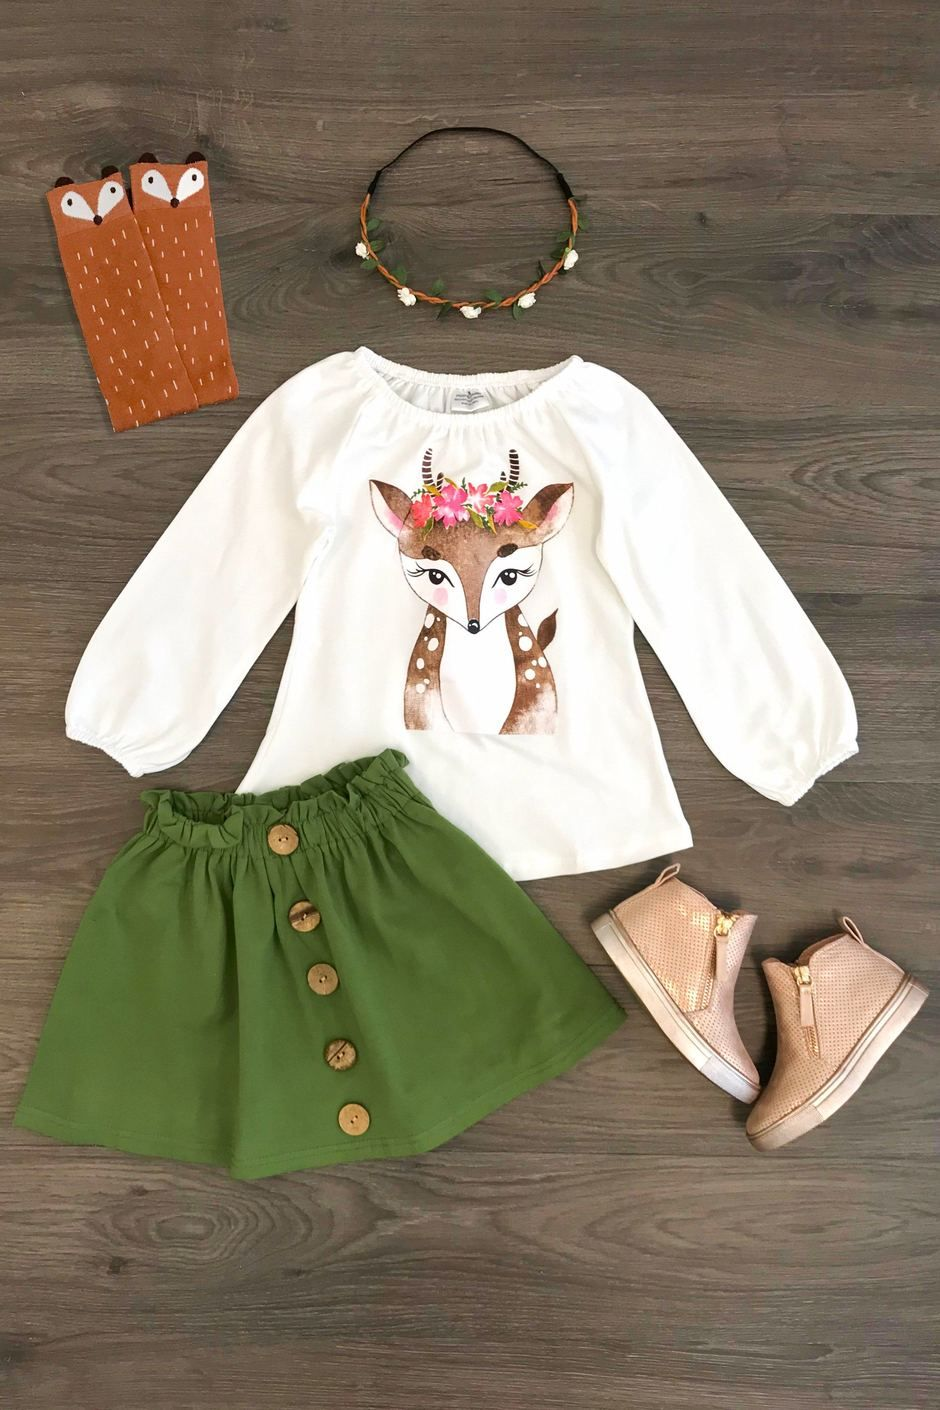 753fd3c6a Olive Green Deer Skirt Set | Torieona | Kids outfits girls, Baby ...